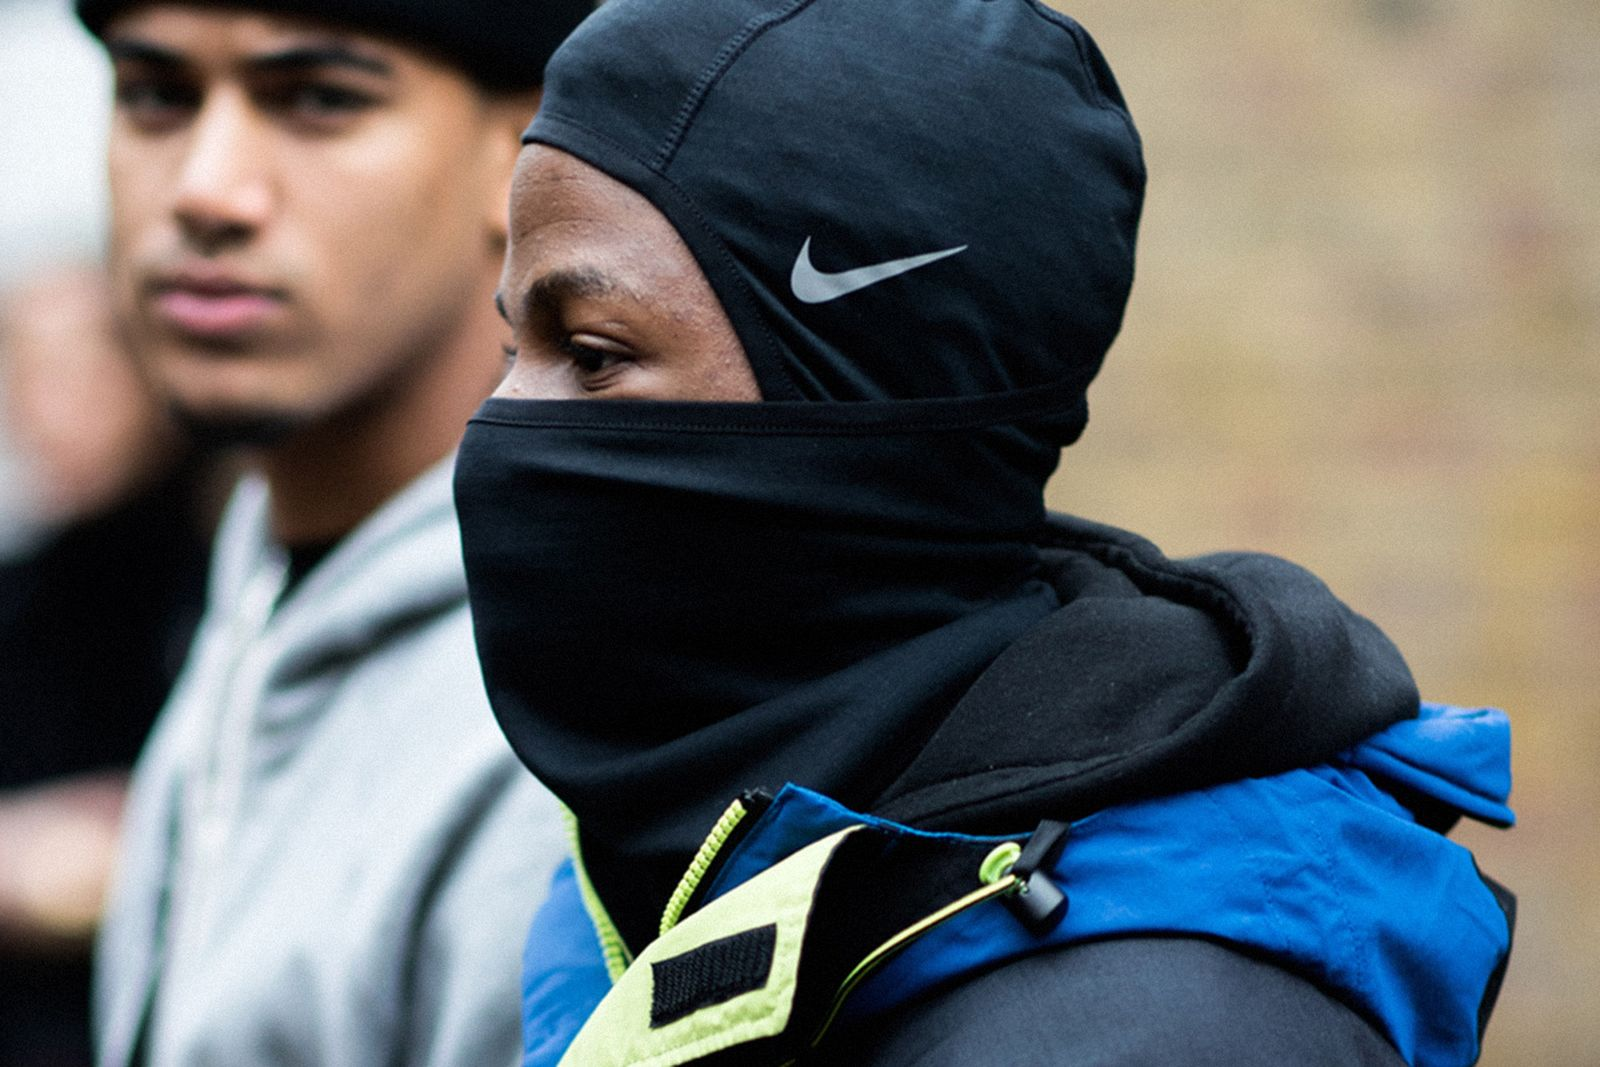 Man in Nike Balaclava